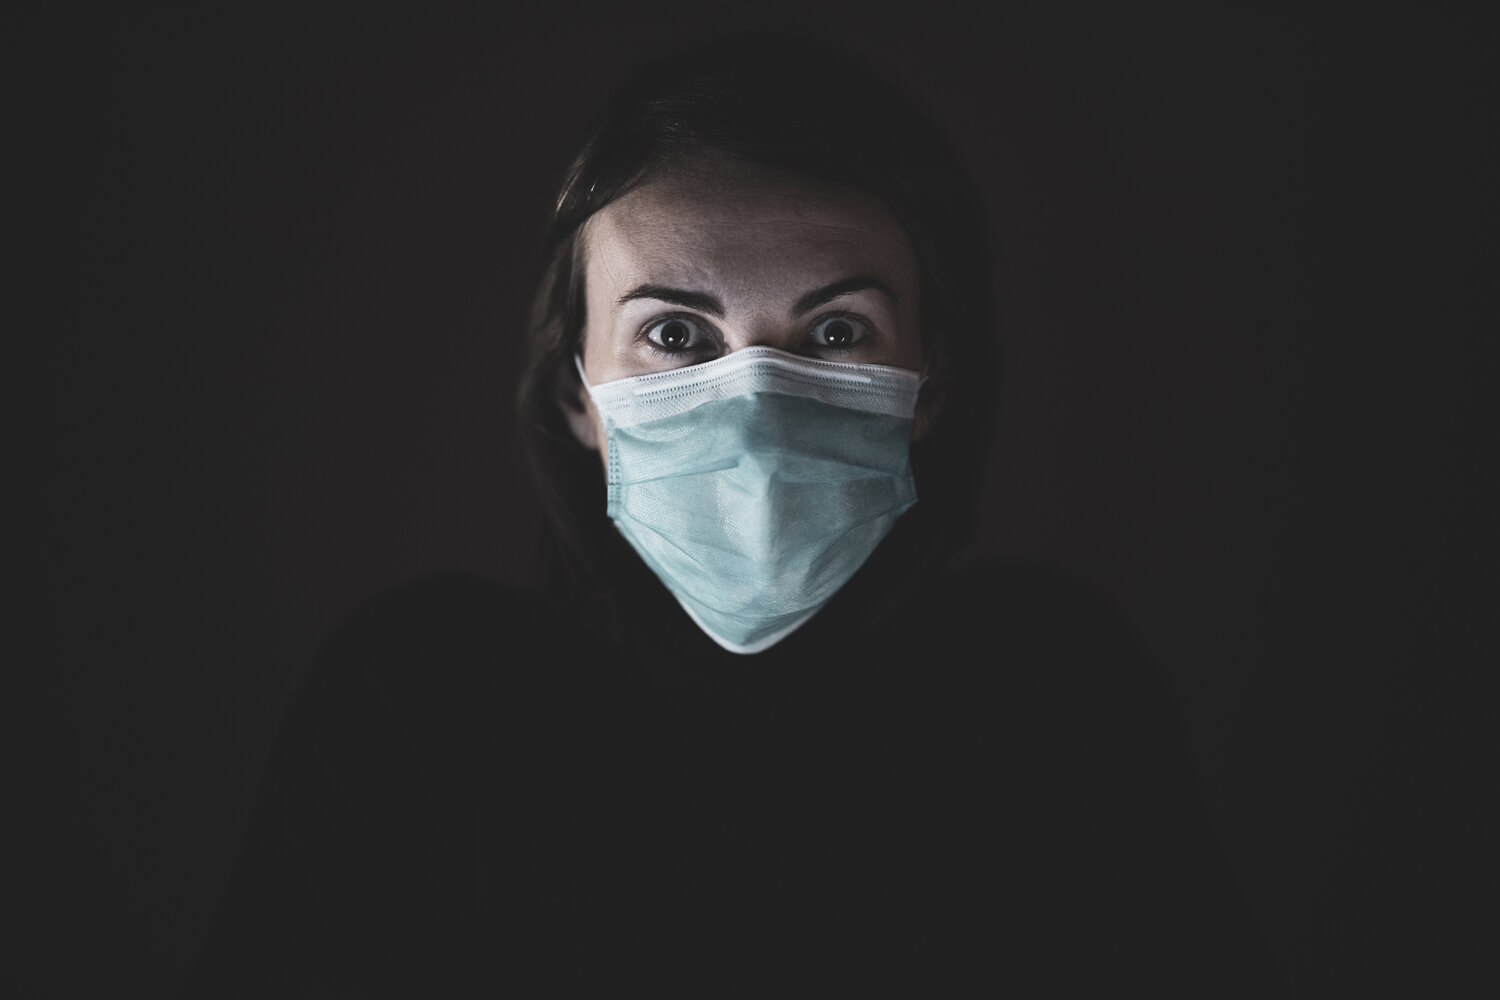 The pandemic is a protracted process that combines a strong fear of dying with uncertainty about when the danger is over. It can always come back and has also been accompanied by authoritarian and erratic action by the authorities. Photo: Engin Akyurt, @enginakyurt, Unsplash.